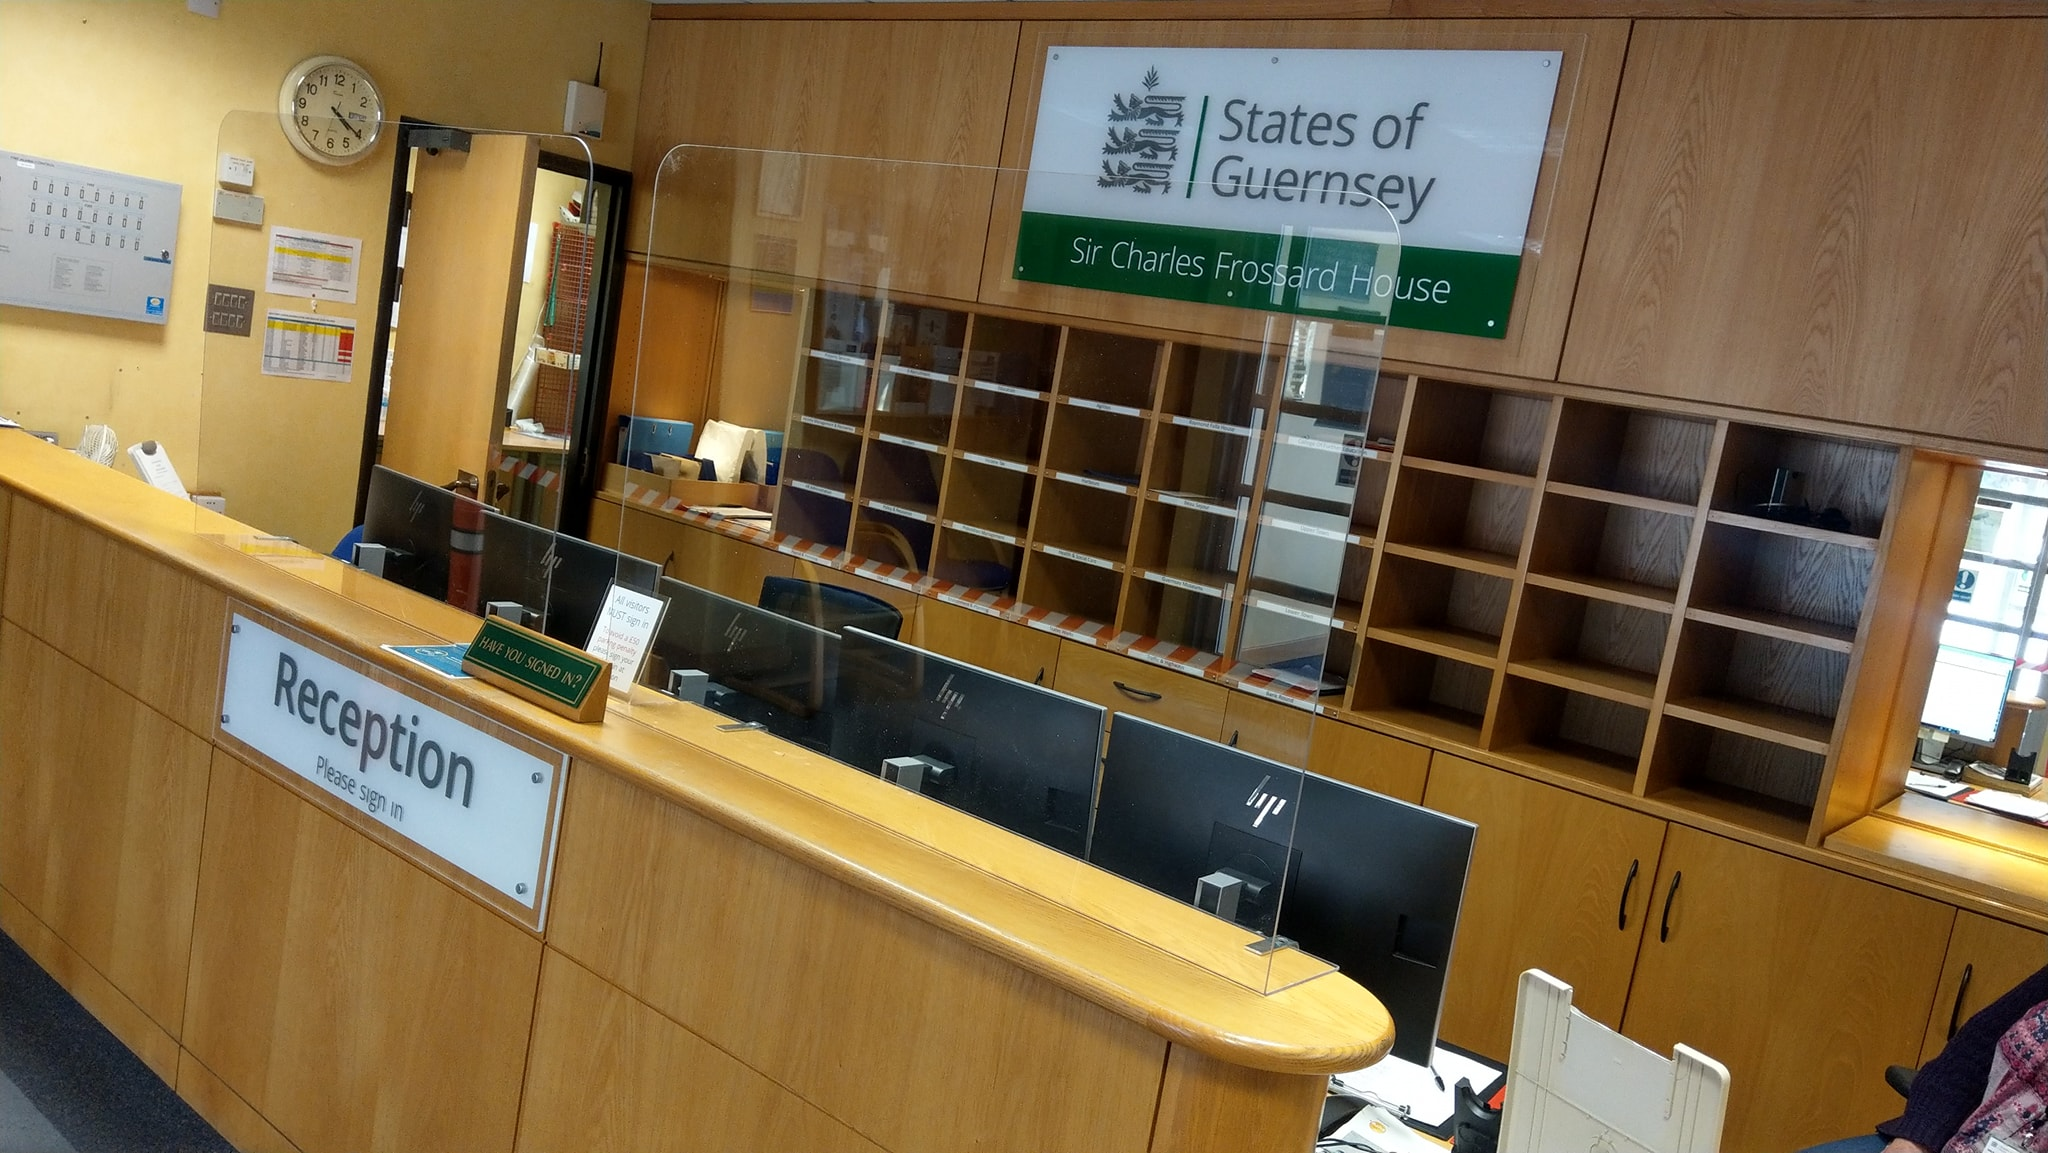 Protection screens supplied and installed for the States of Guernsey